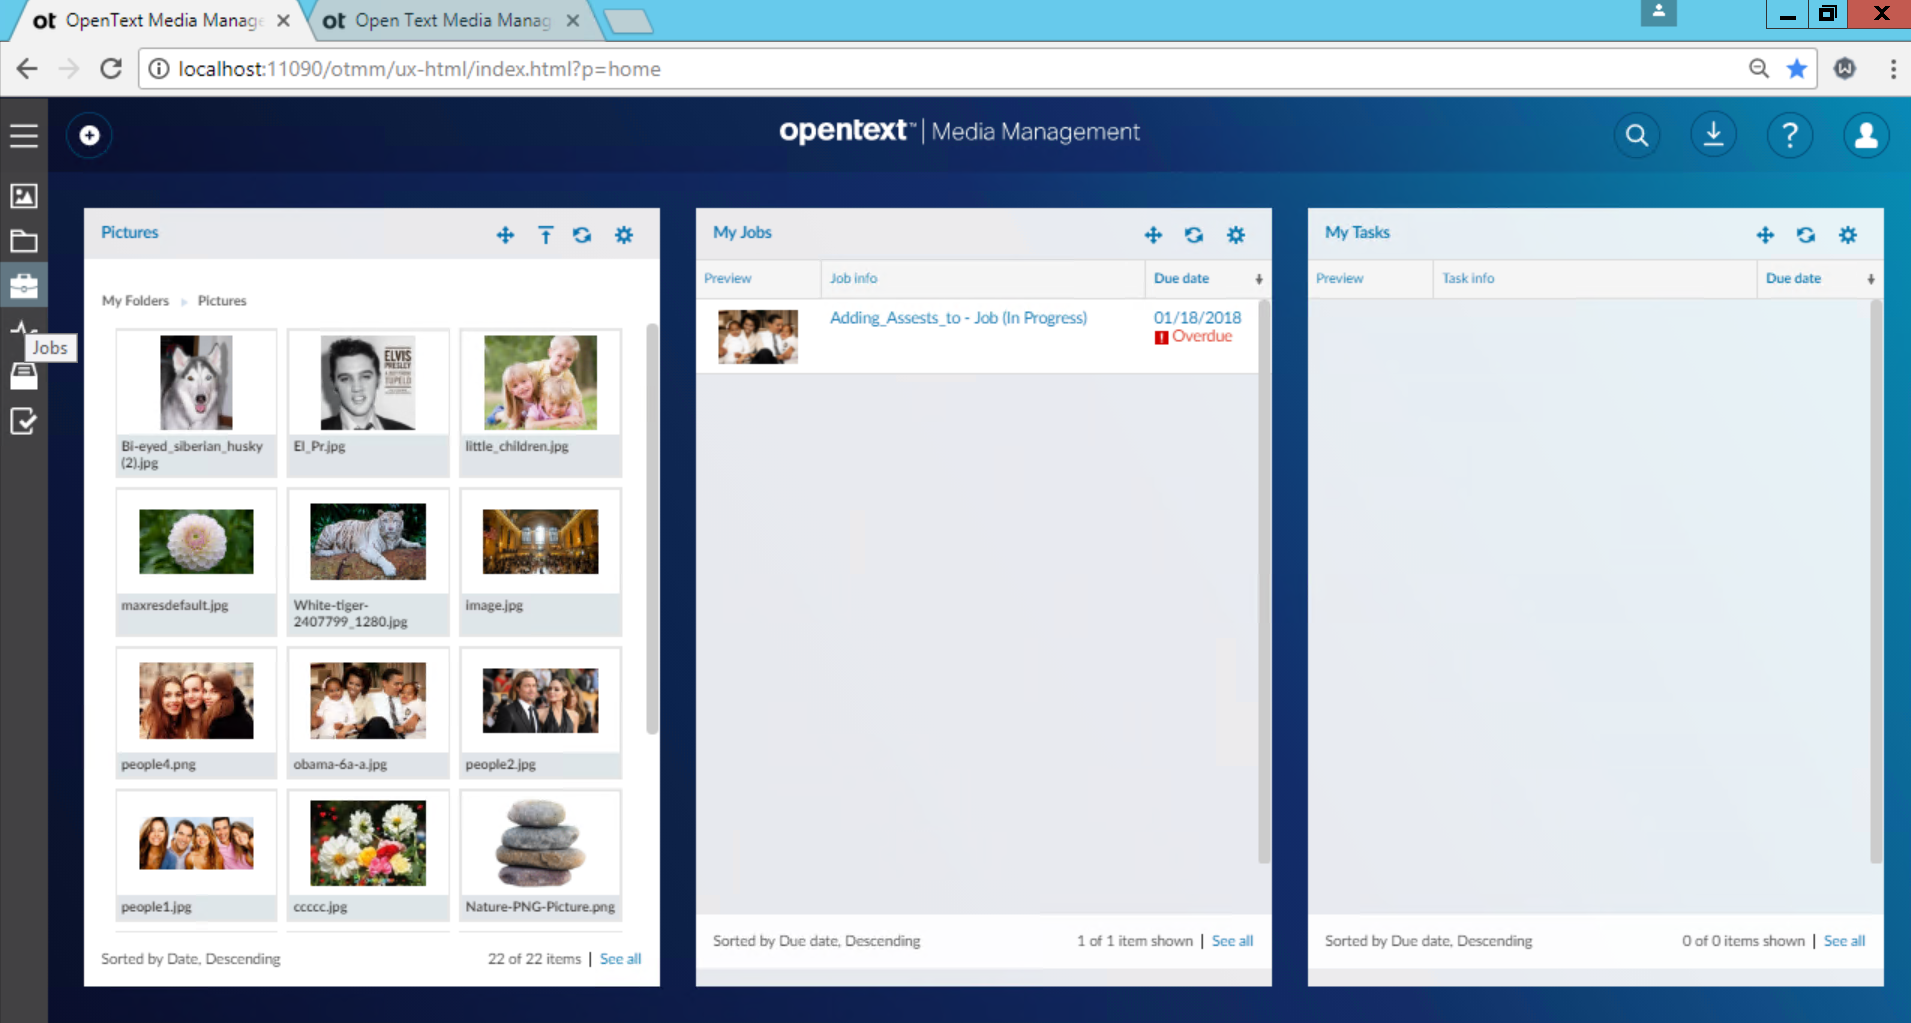 OpenText Media Management: home page